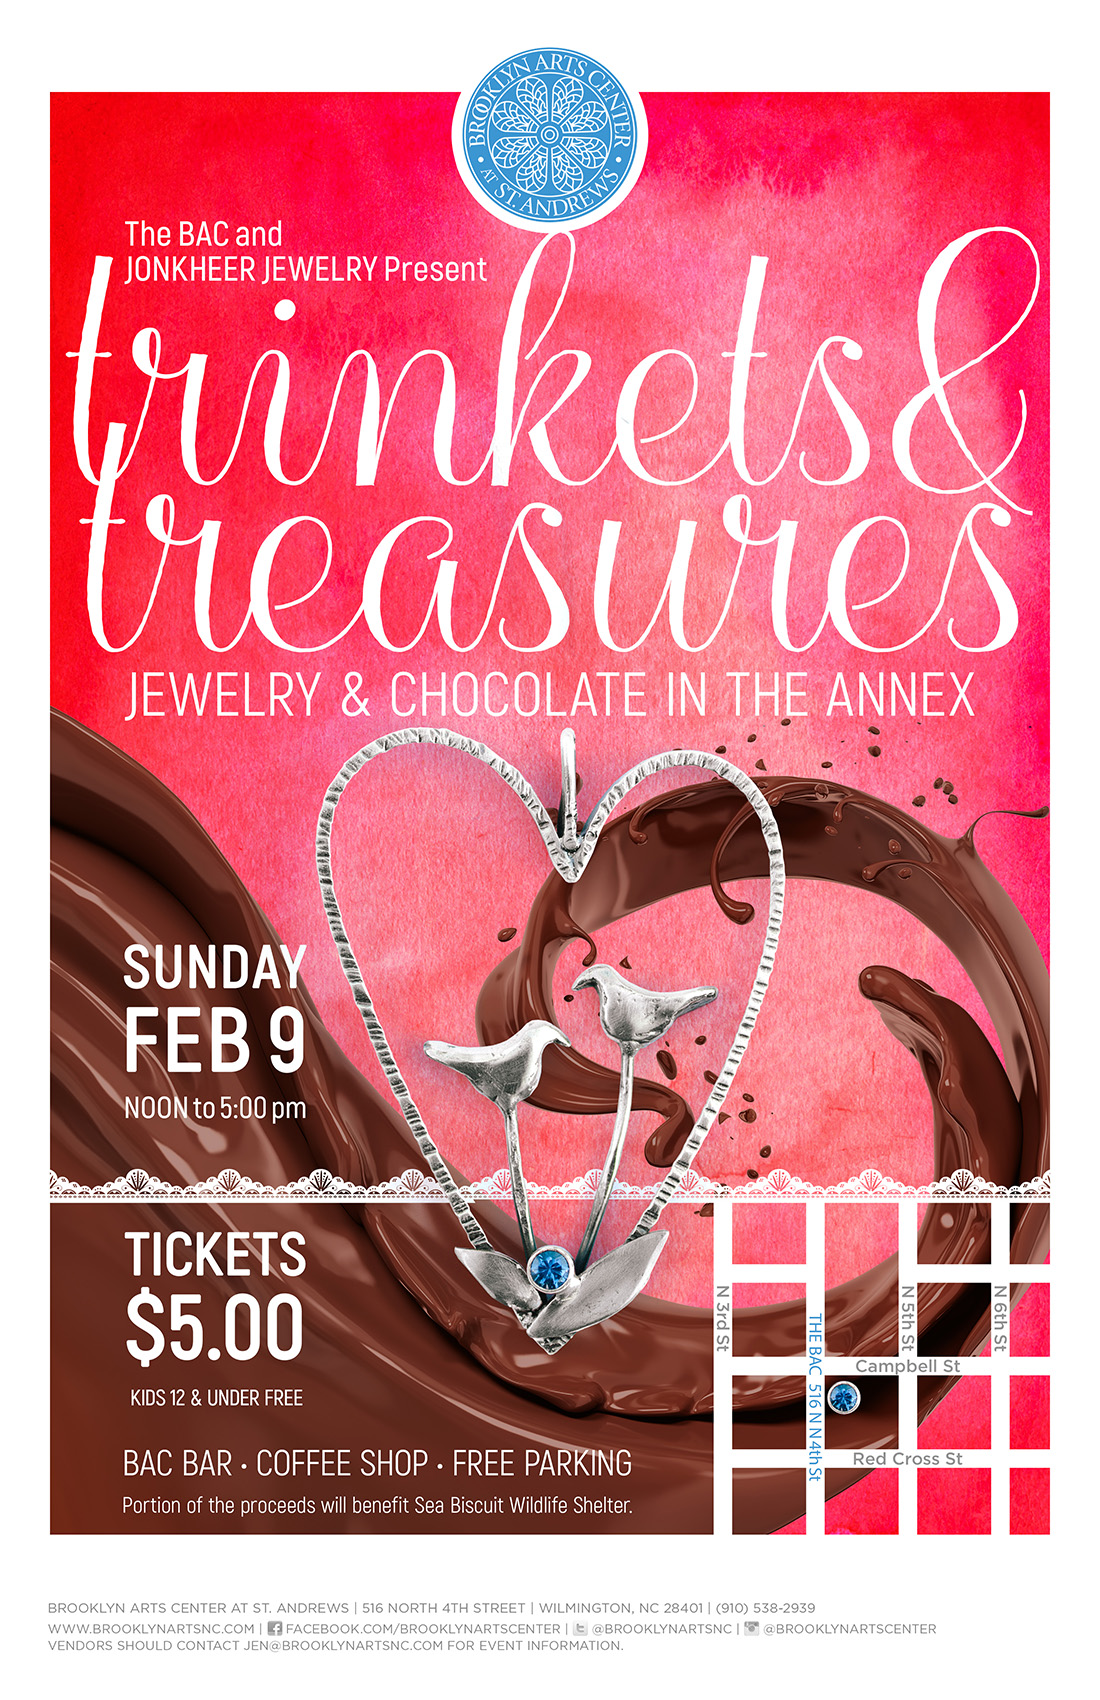 BAC_2275-trinkets and treasures-poster_final (1).jpg